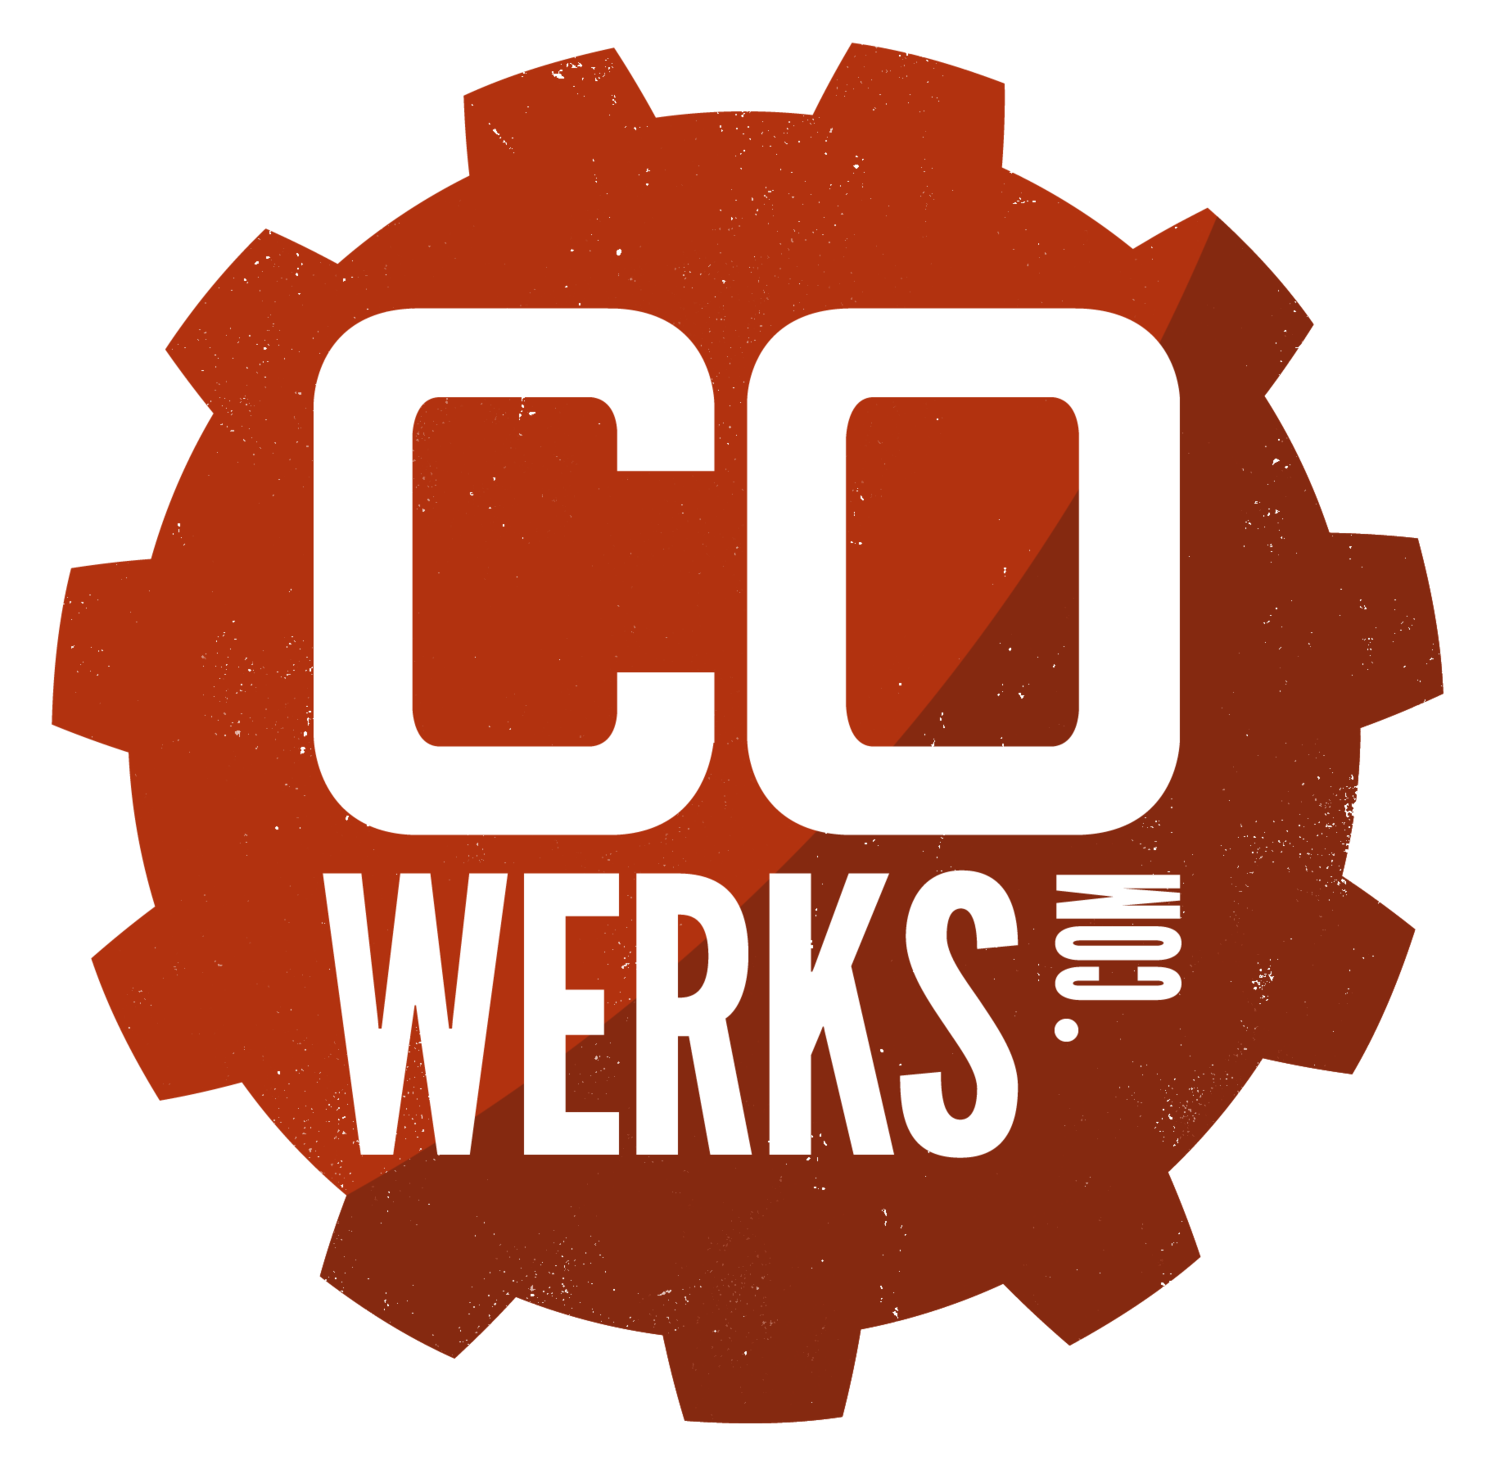 Cowerks :: Asbury Park, NJ's Coworking Office, Meeting, and Event Space.